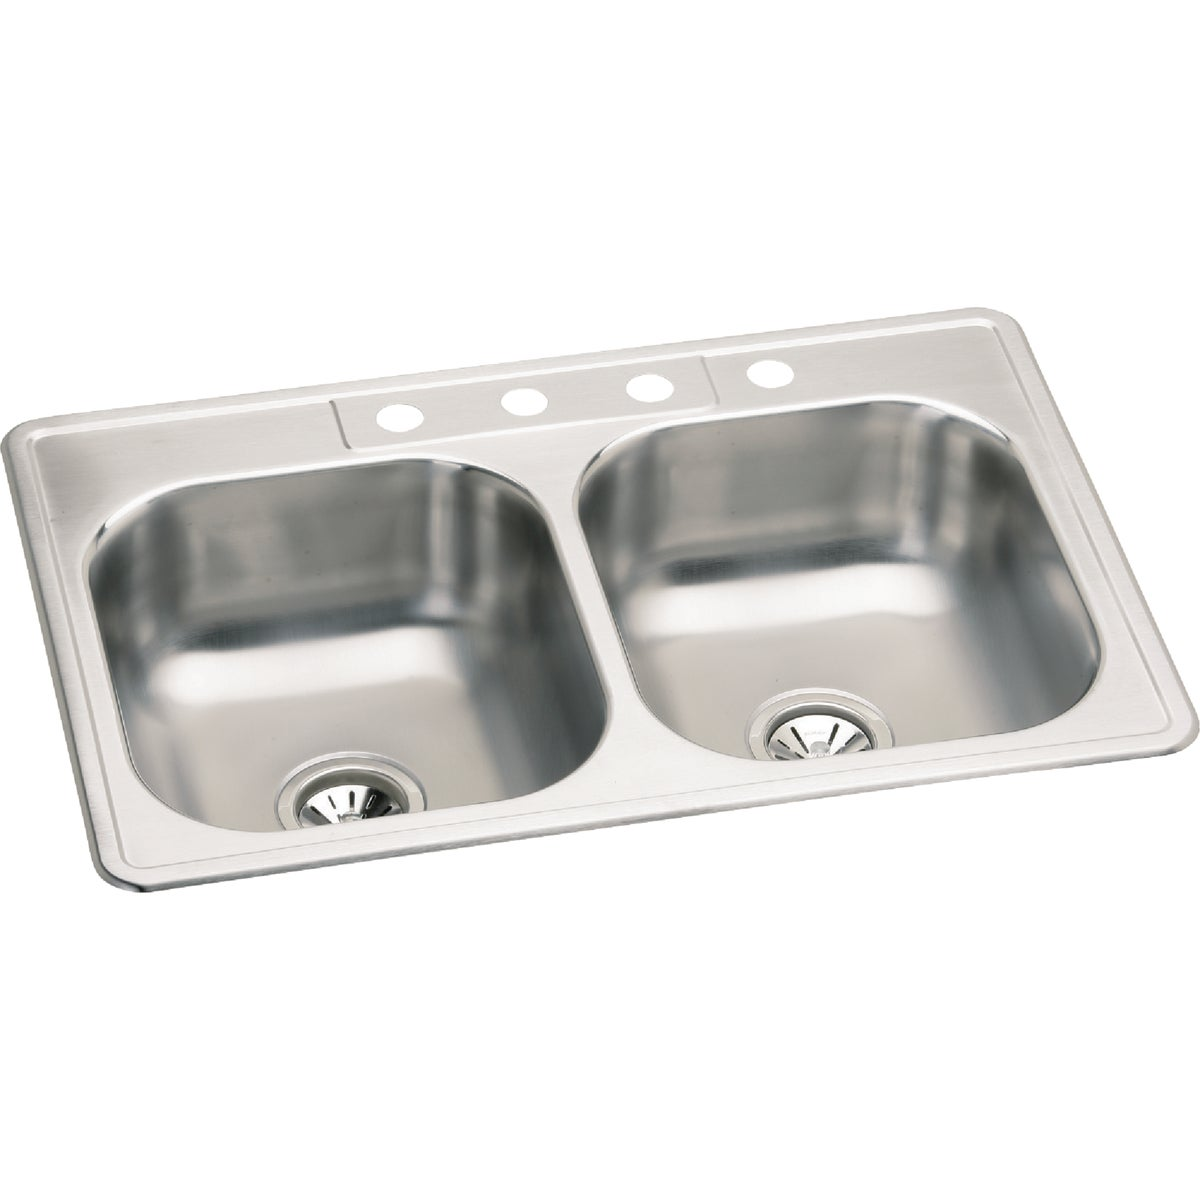 "7"" SS DOUBLE-BOWL SINK - NBC33224 by Elkay Neptune"